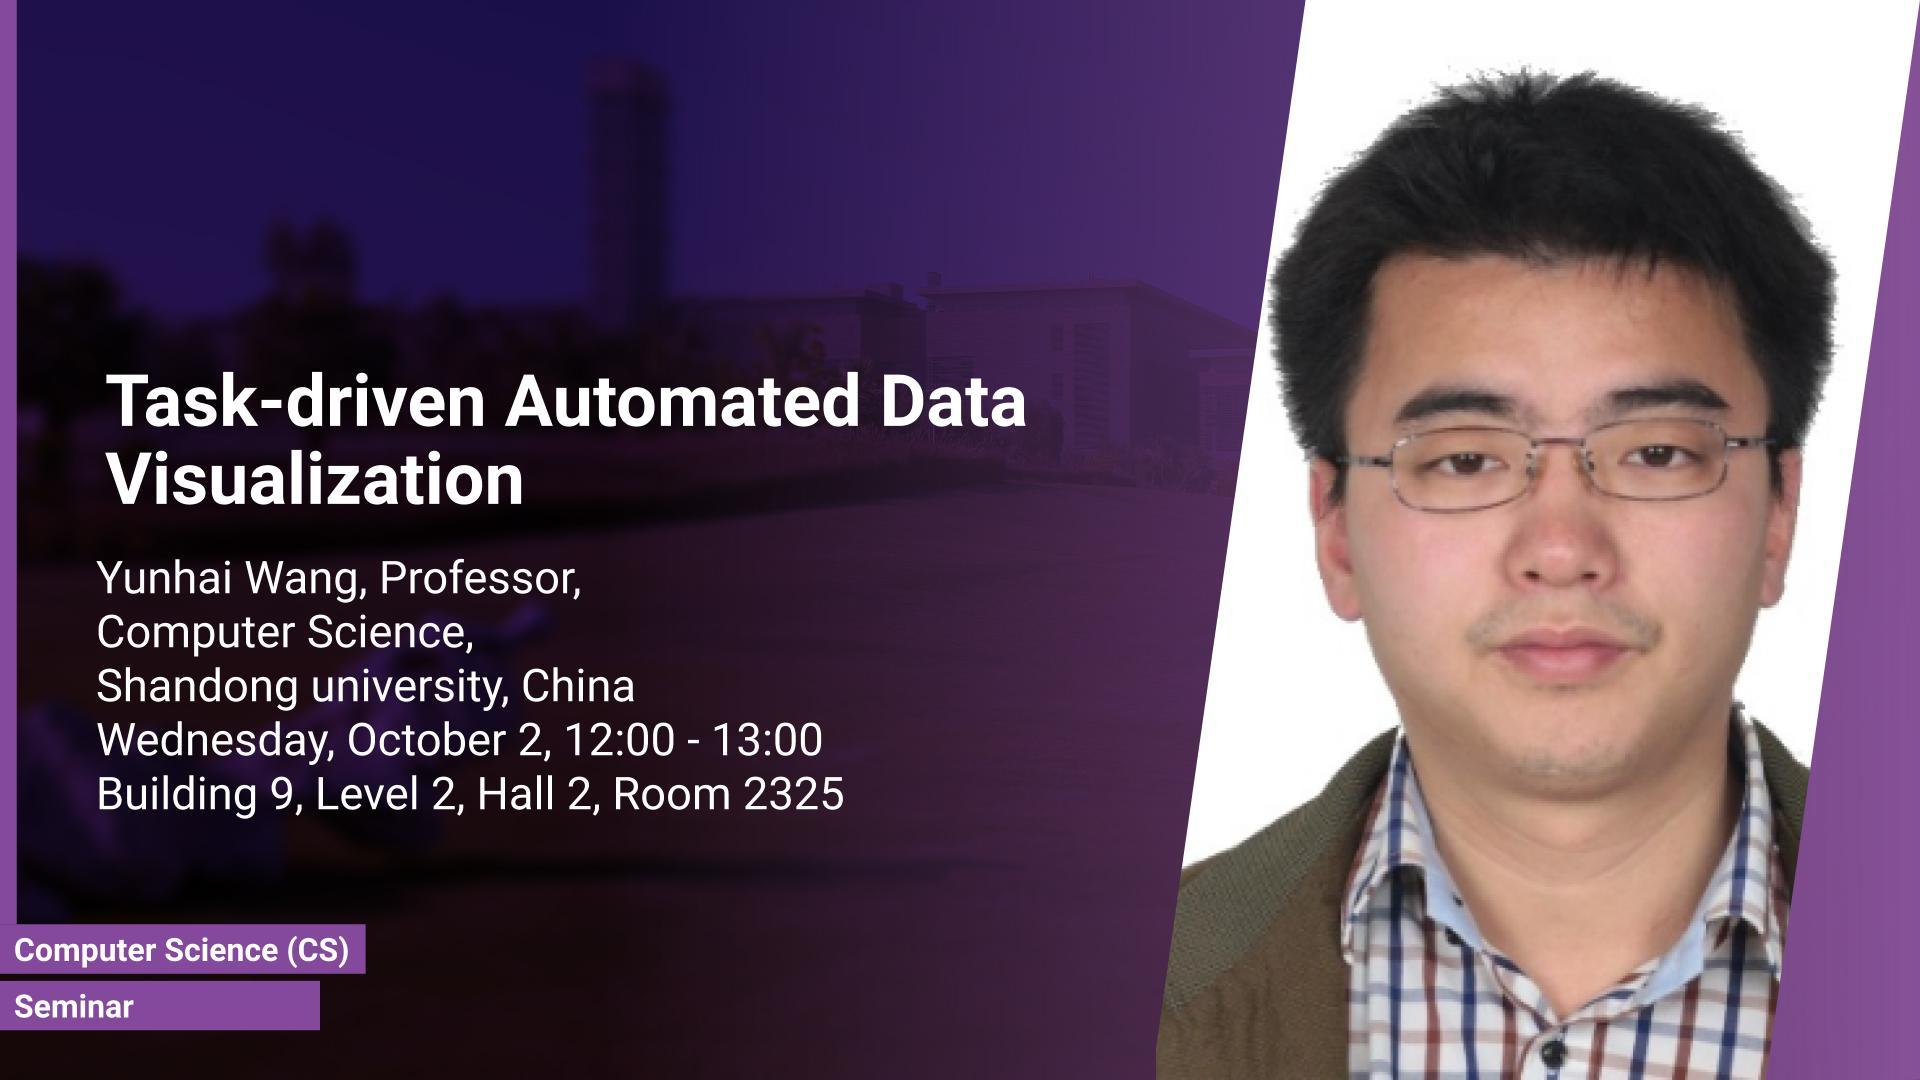 KAUST CEMSE AMCS Seminar Yunhai Wang Task driven Automated Data Visualization